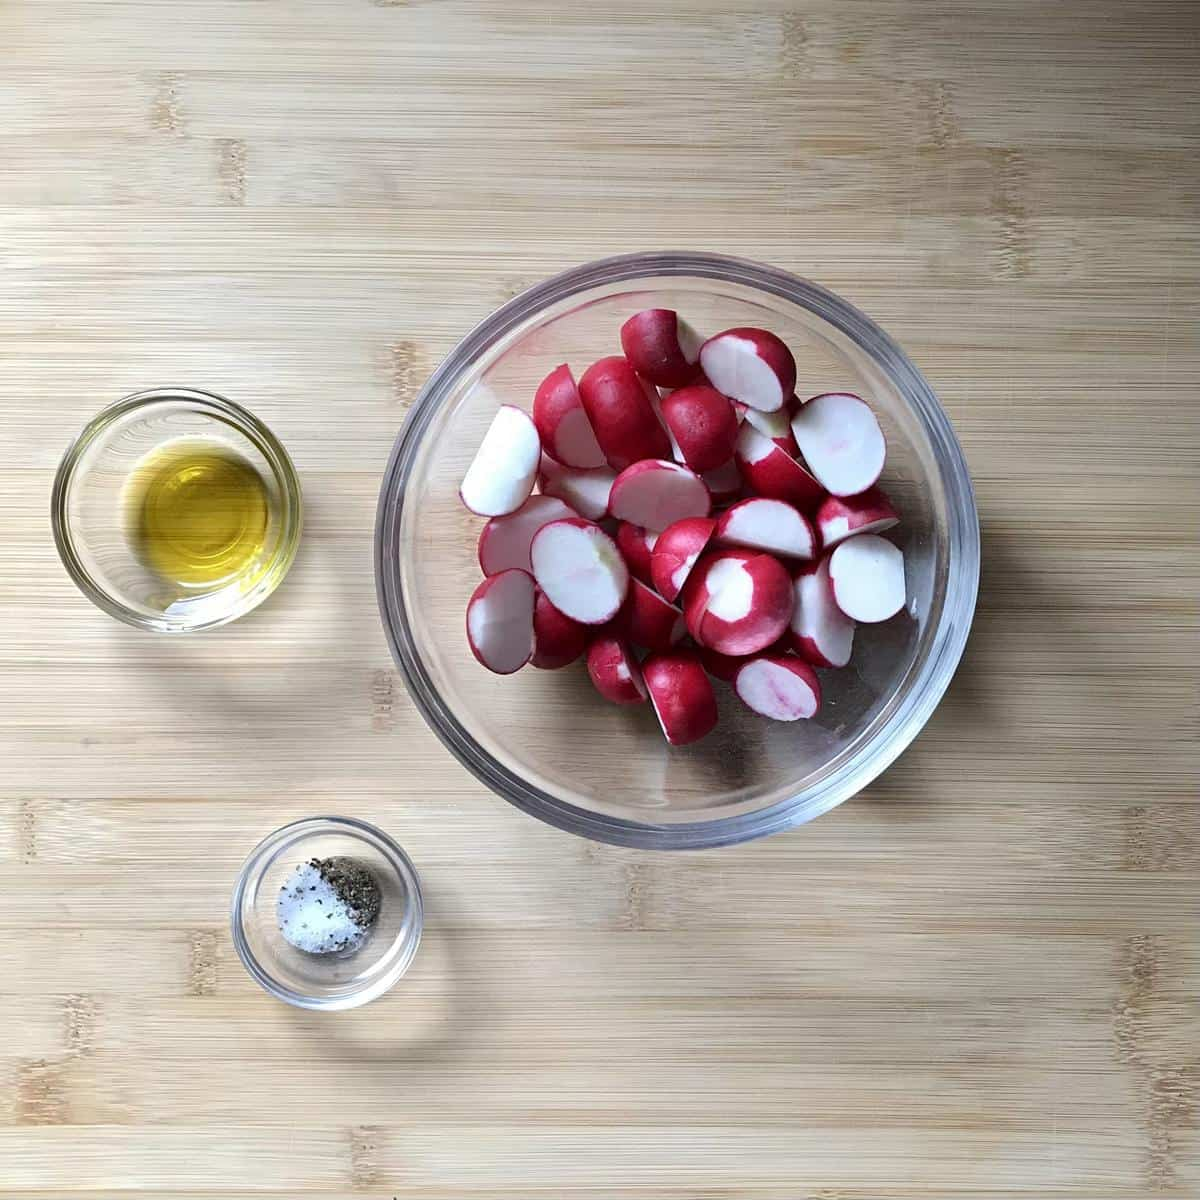 Halved radishes, olive il, salat and pepper in separate bowls.